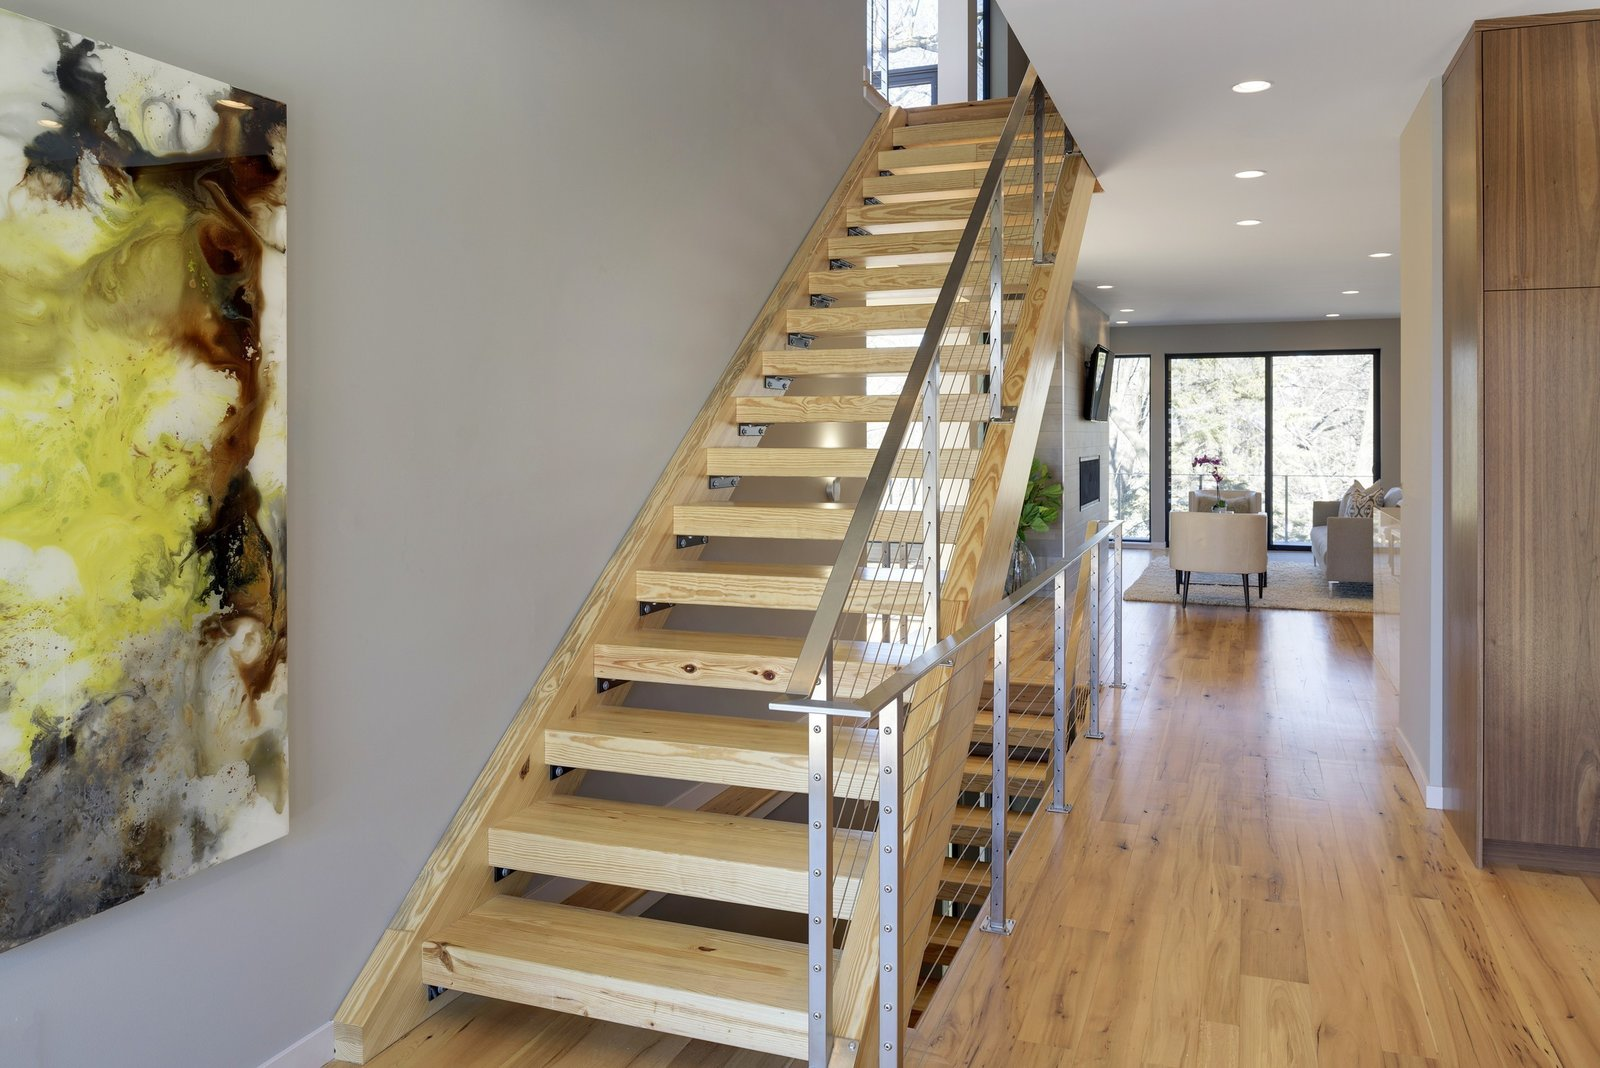 """Photo 2 of 11 in Minneapolis Modern """"Dream Home"""" Built by Sustainable 9 Design + Build"""